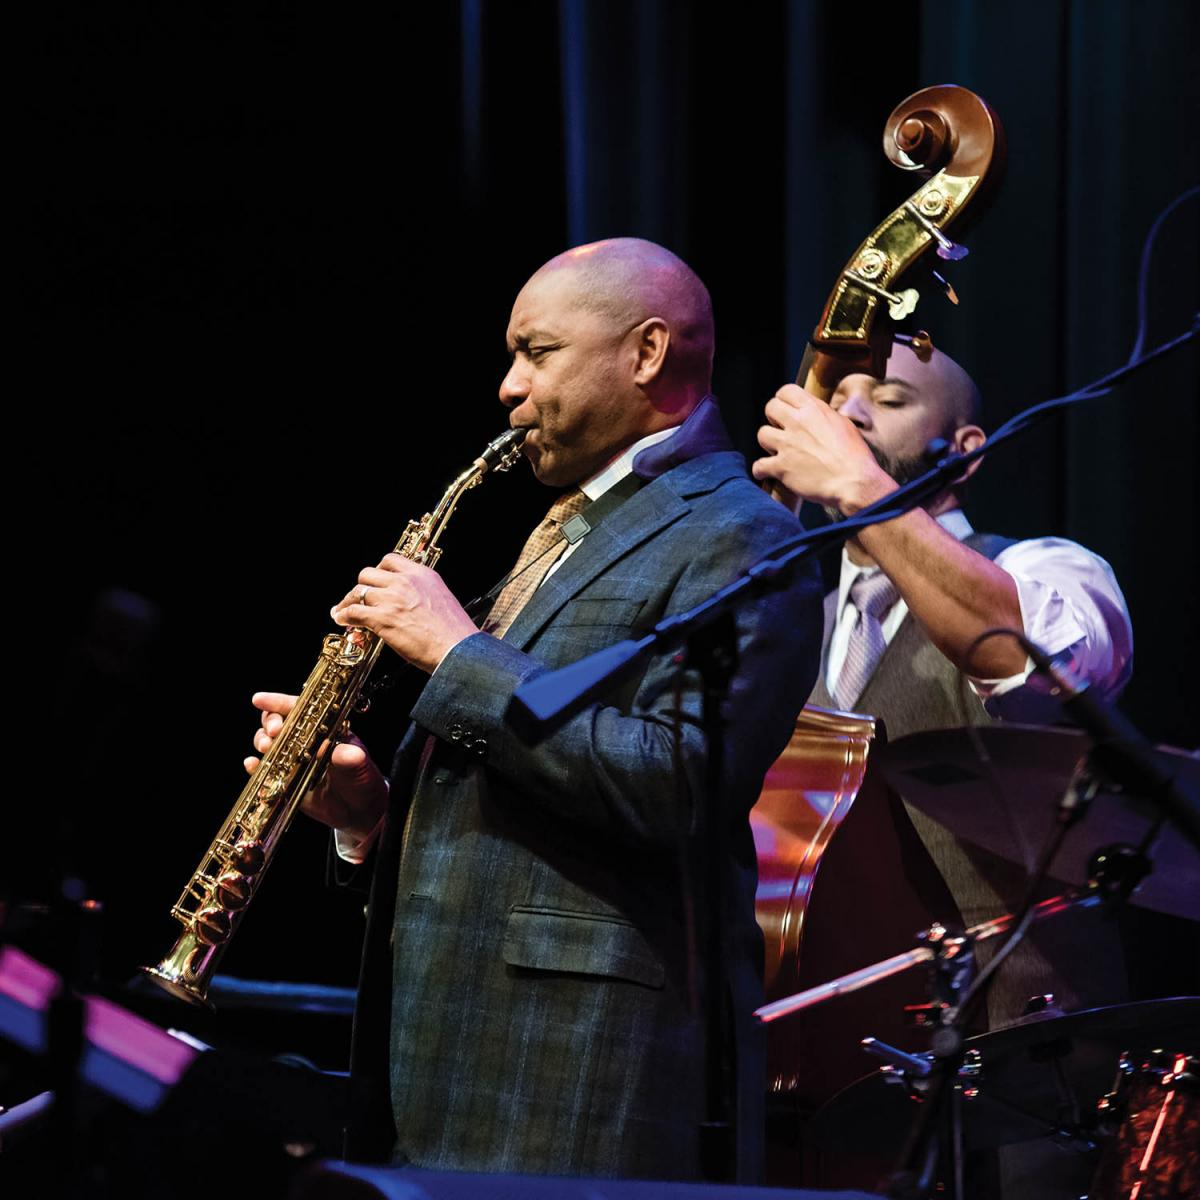 This year's Esbenshade Series brought top talent to the community, including a performance by the Branford Marsalis Quartet with guest vocalist Kurt Elling.